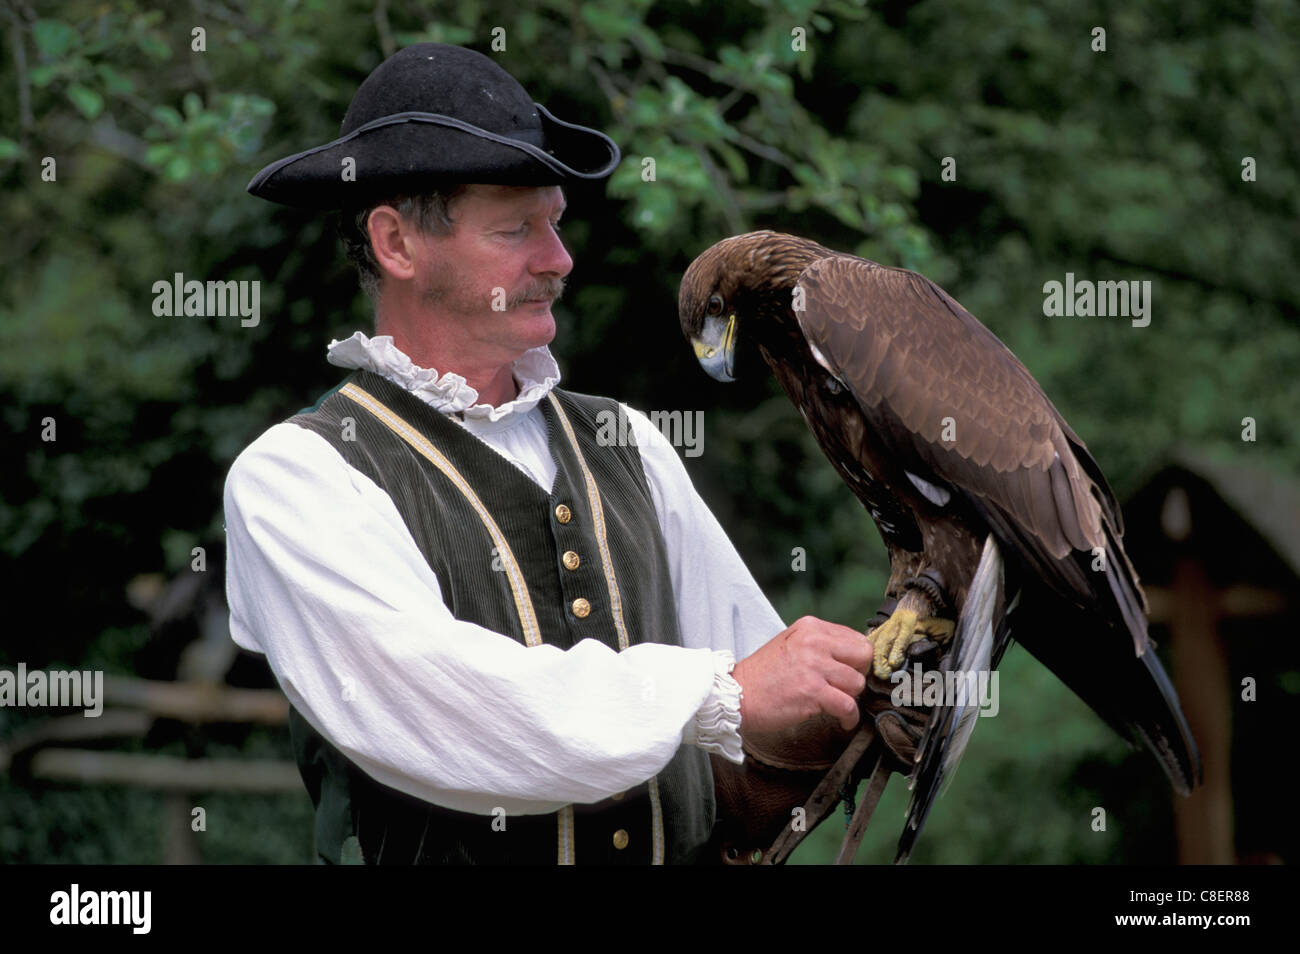 Birds of Prey, Show, Chateau la Bourbansais, Brittany, Bretagne, France, Europe, man - Stock Image